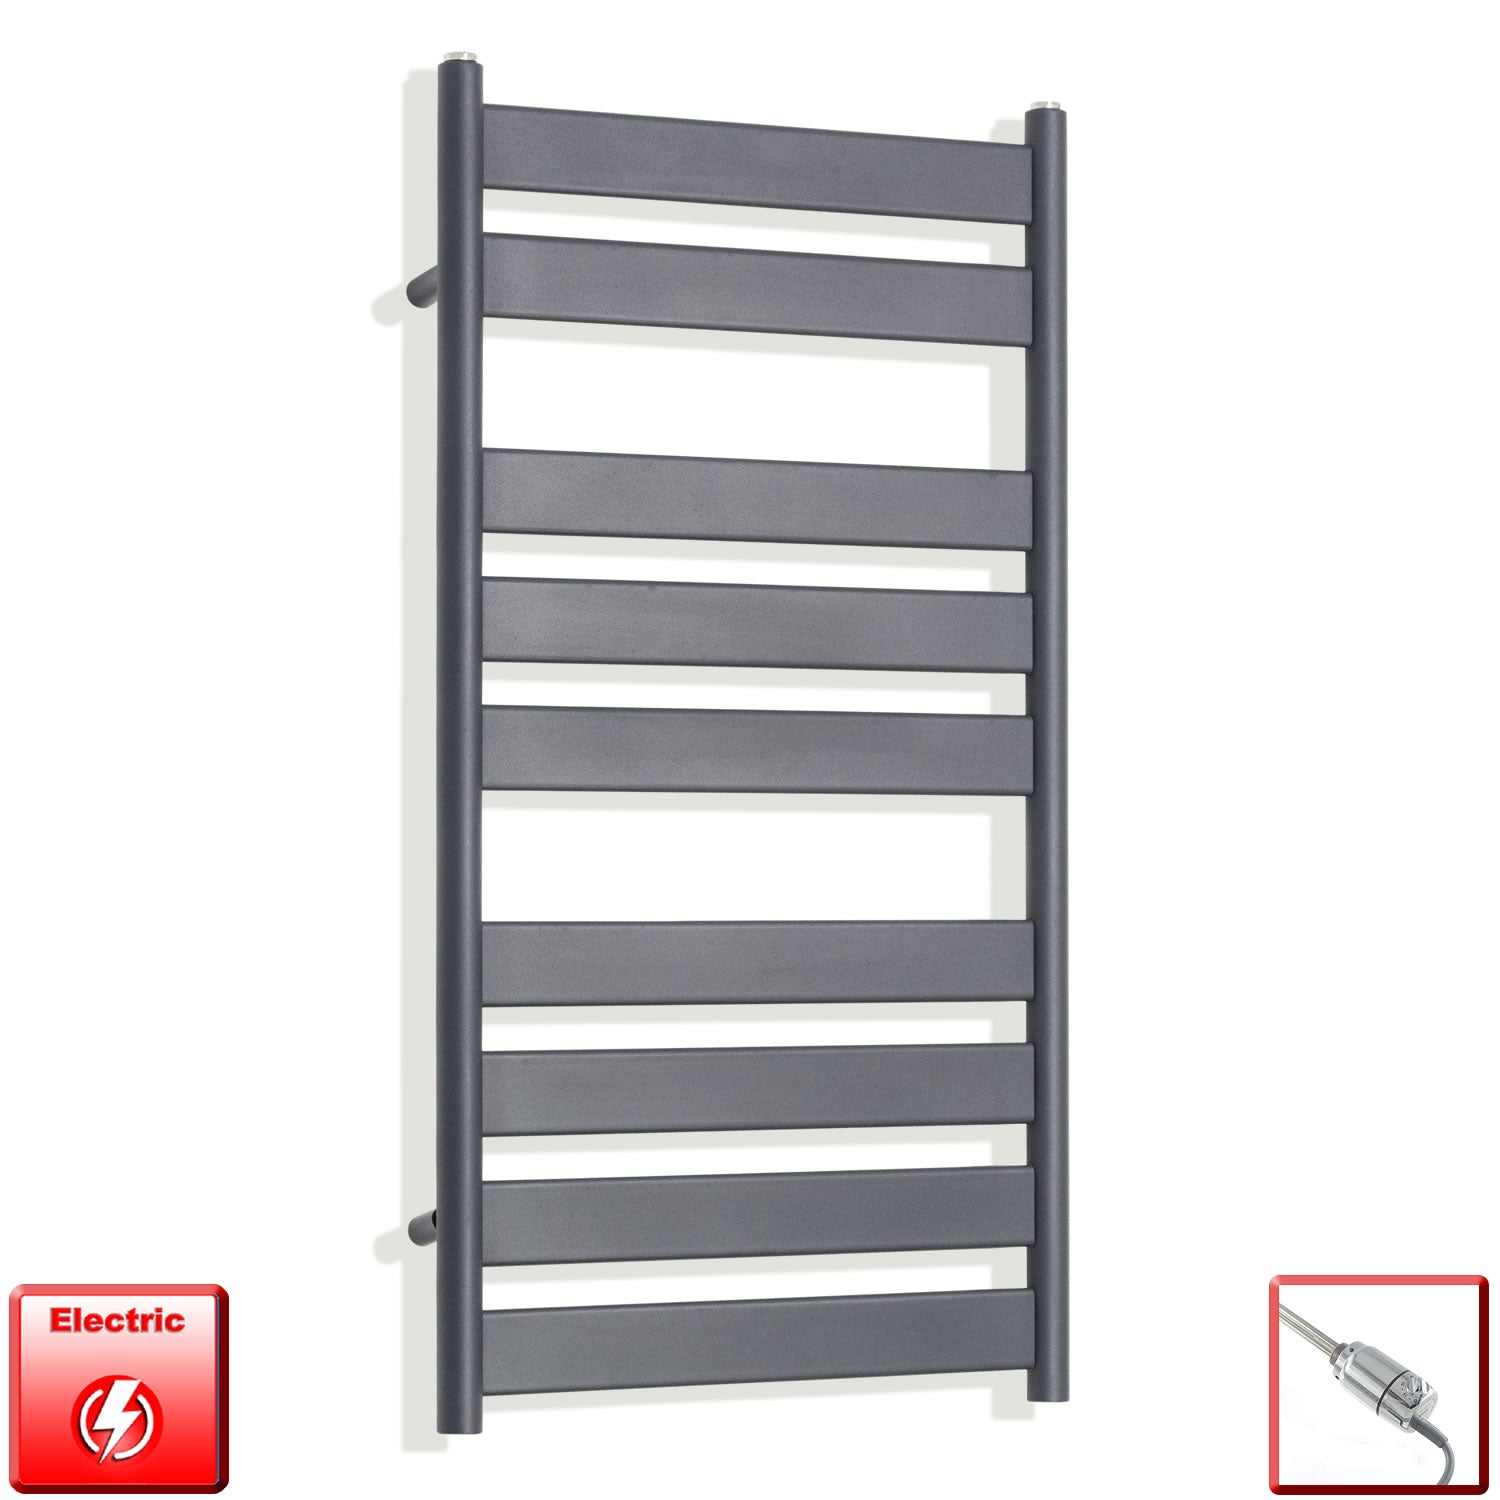 500mm Wide 950mm High Flat Panel Designer Anthracite Heated Towel Rail Radiator HTR,Electric Thermostatic Element